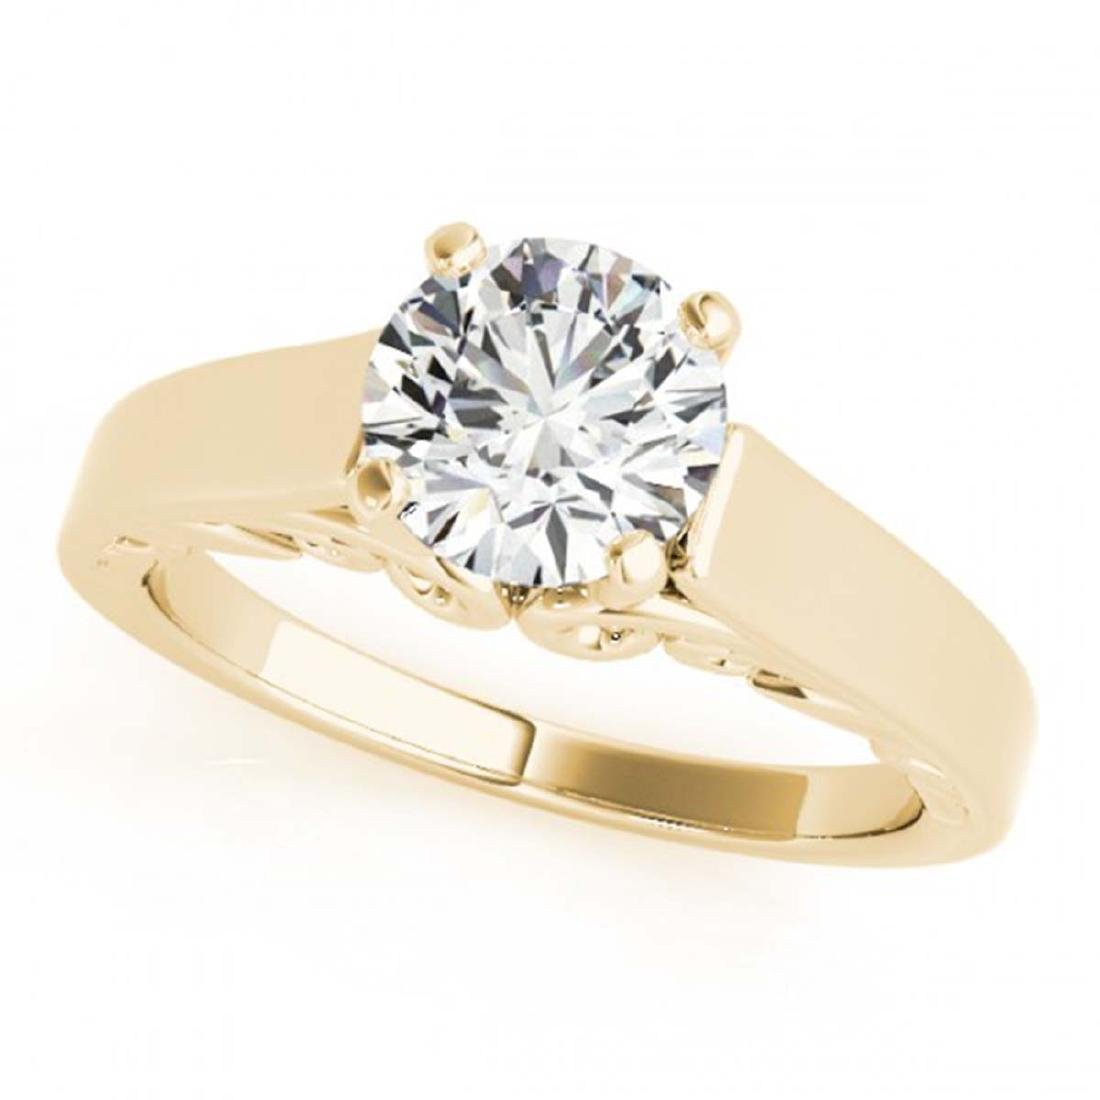 0.75 CTW VS/SI Diamond Solitaire Ring 14K Yellow Gold -